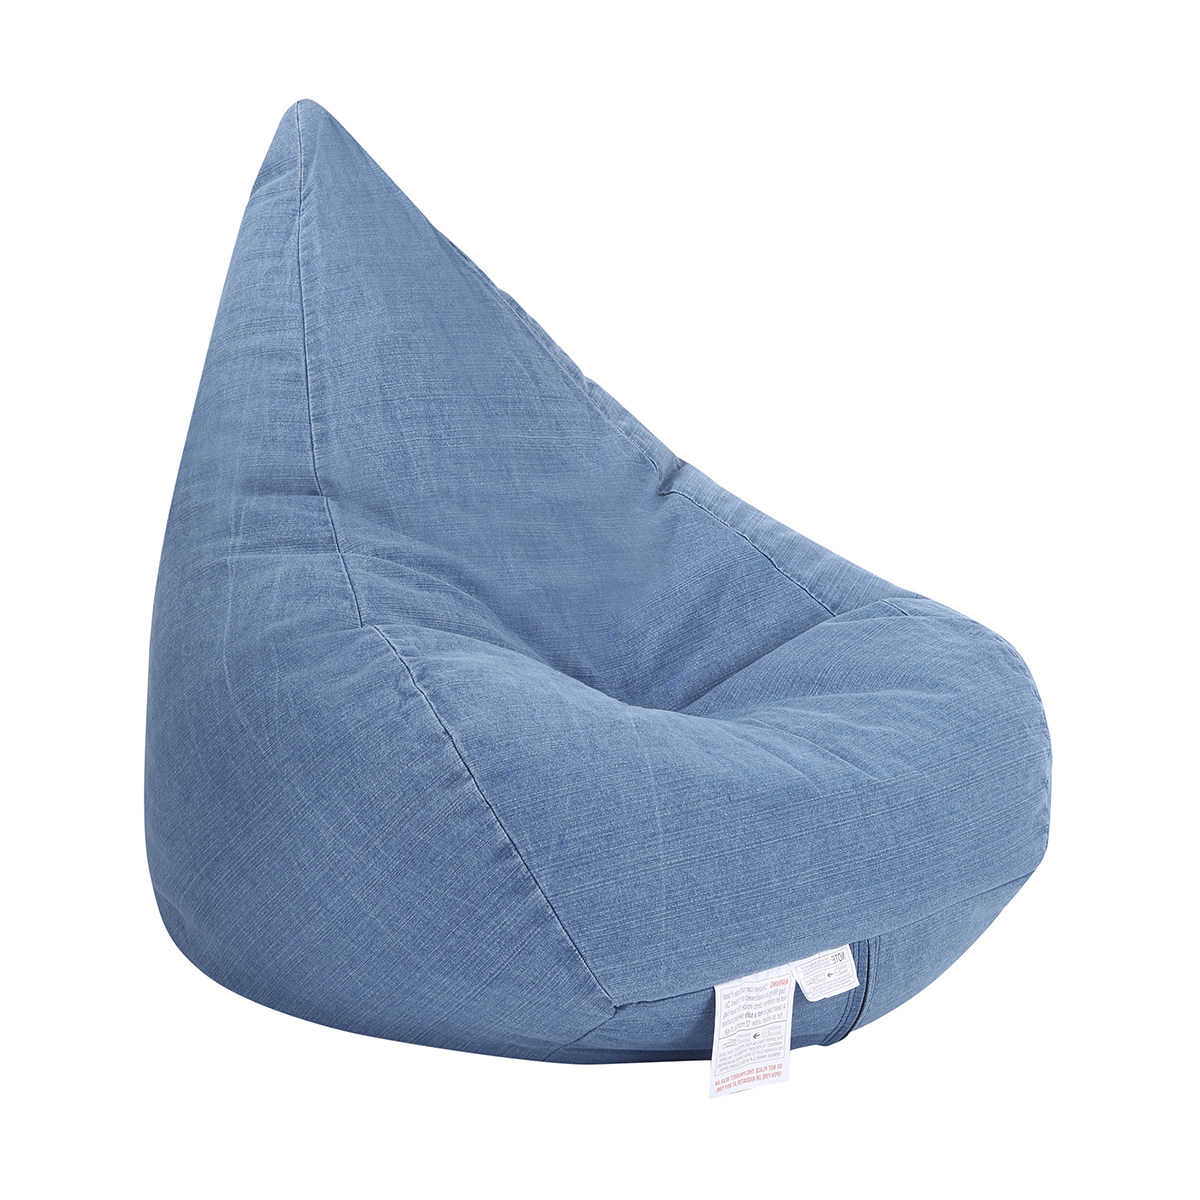 denim bean bag chair green full movie online kmart